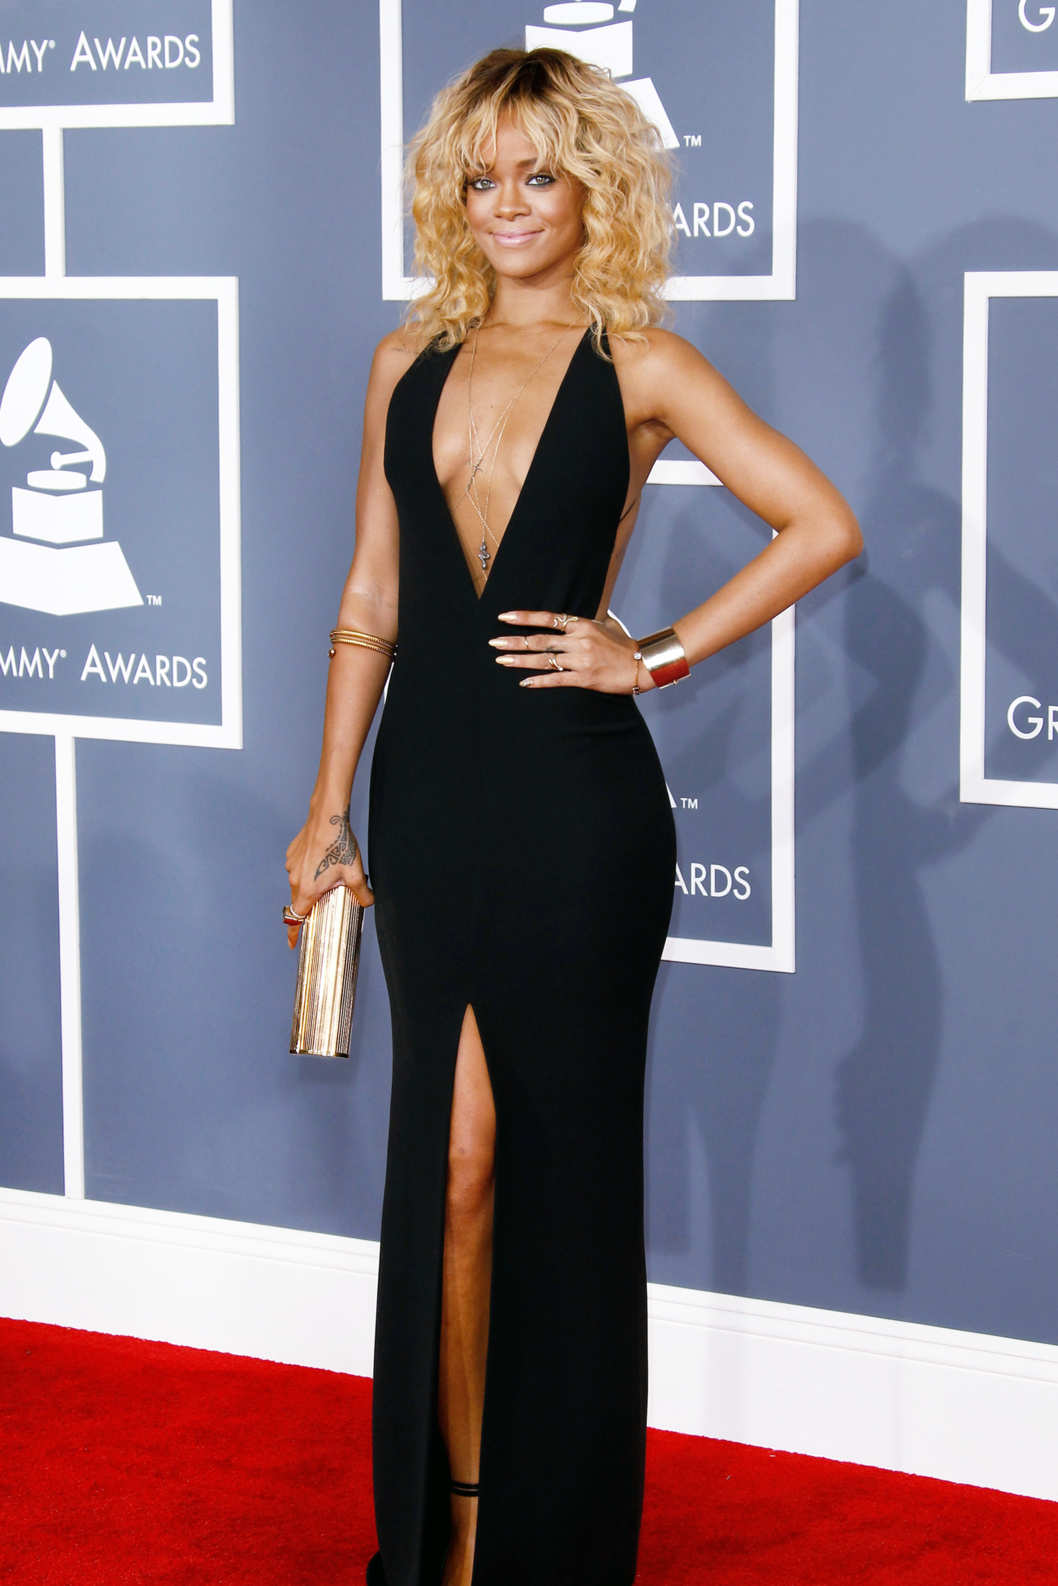 Singer Rihanna arrives at the 54th Annual GRAMMY Awards held at the Staples Center on February 12, 2012 in Los Angeles, California.